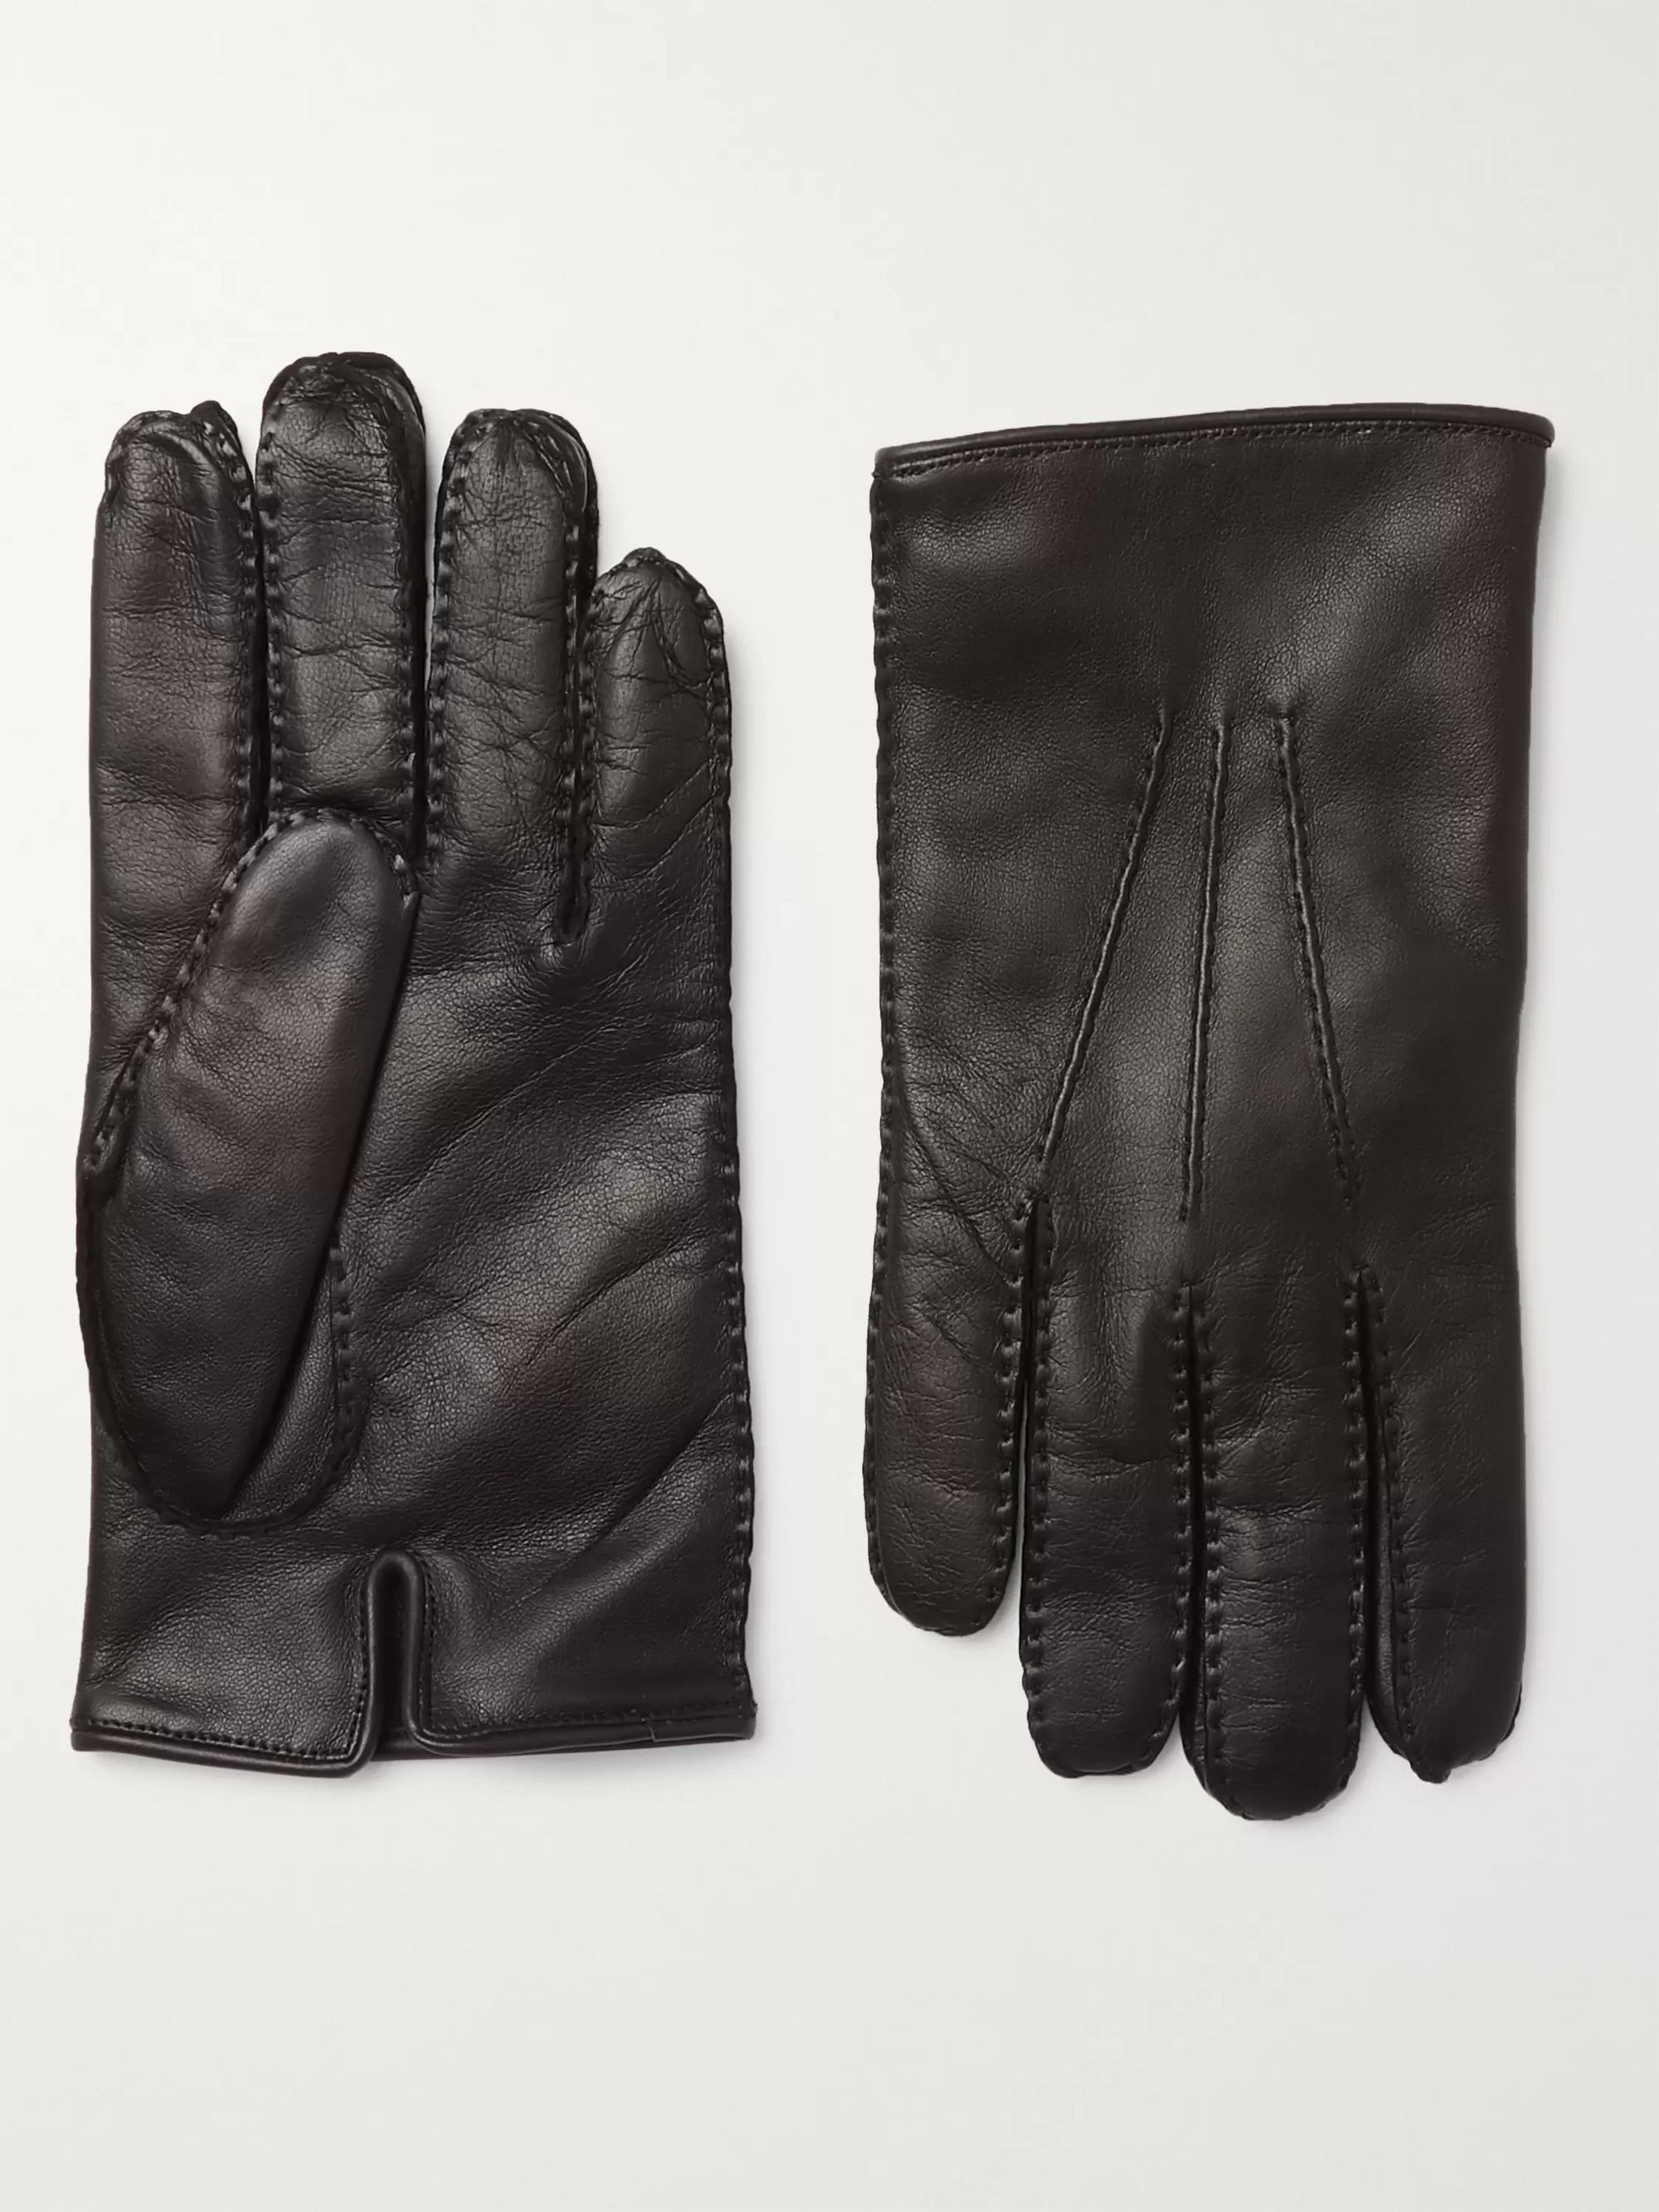 Ermenegildo Zegna Leather Gloves